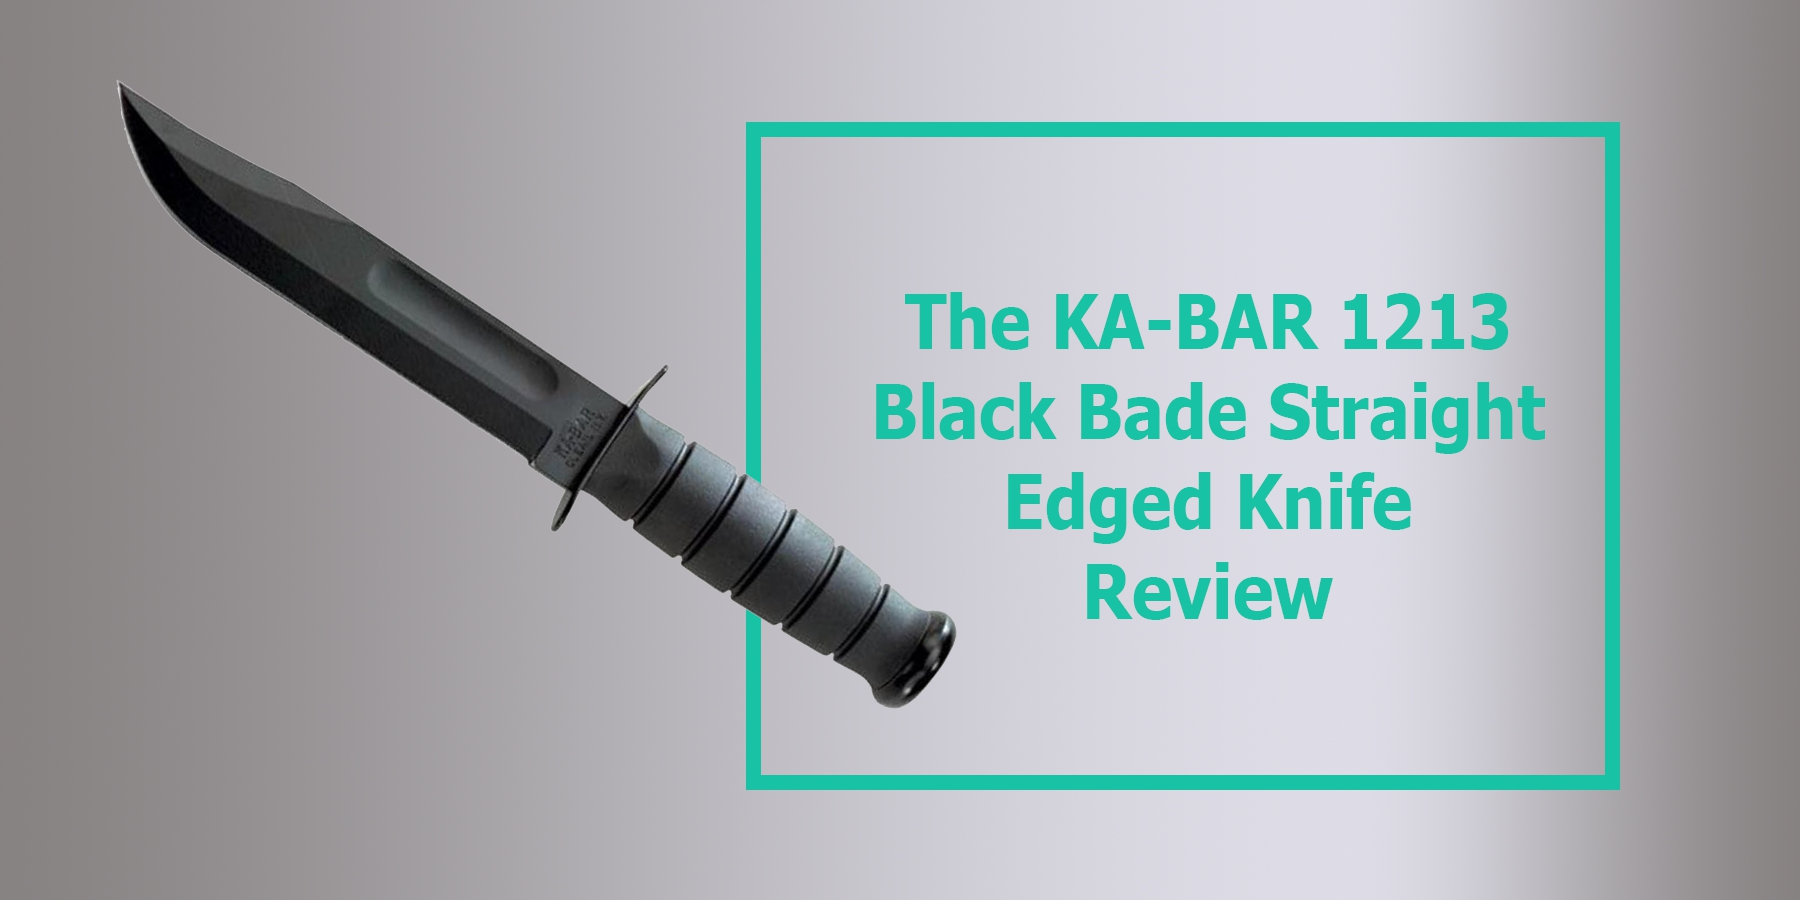 The KA-BAR 1213 Black Bade Straight Edged Knife Review